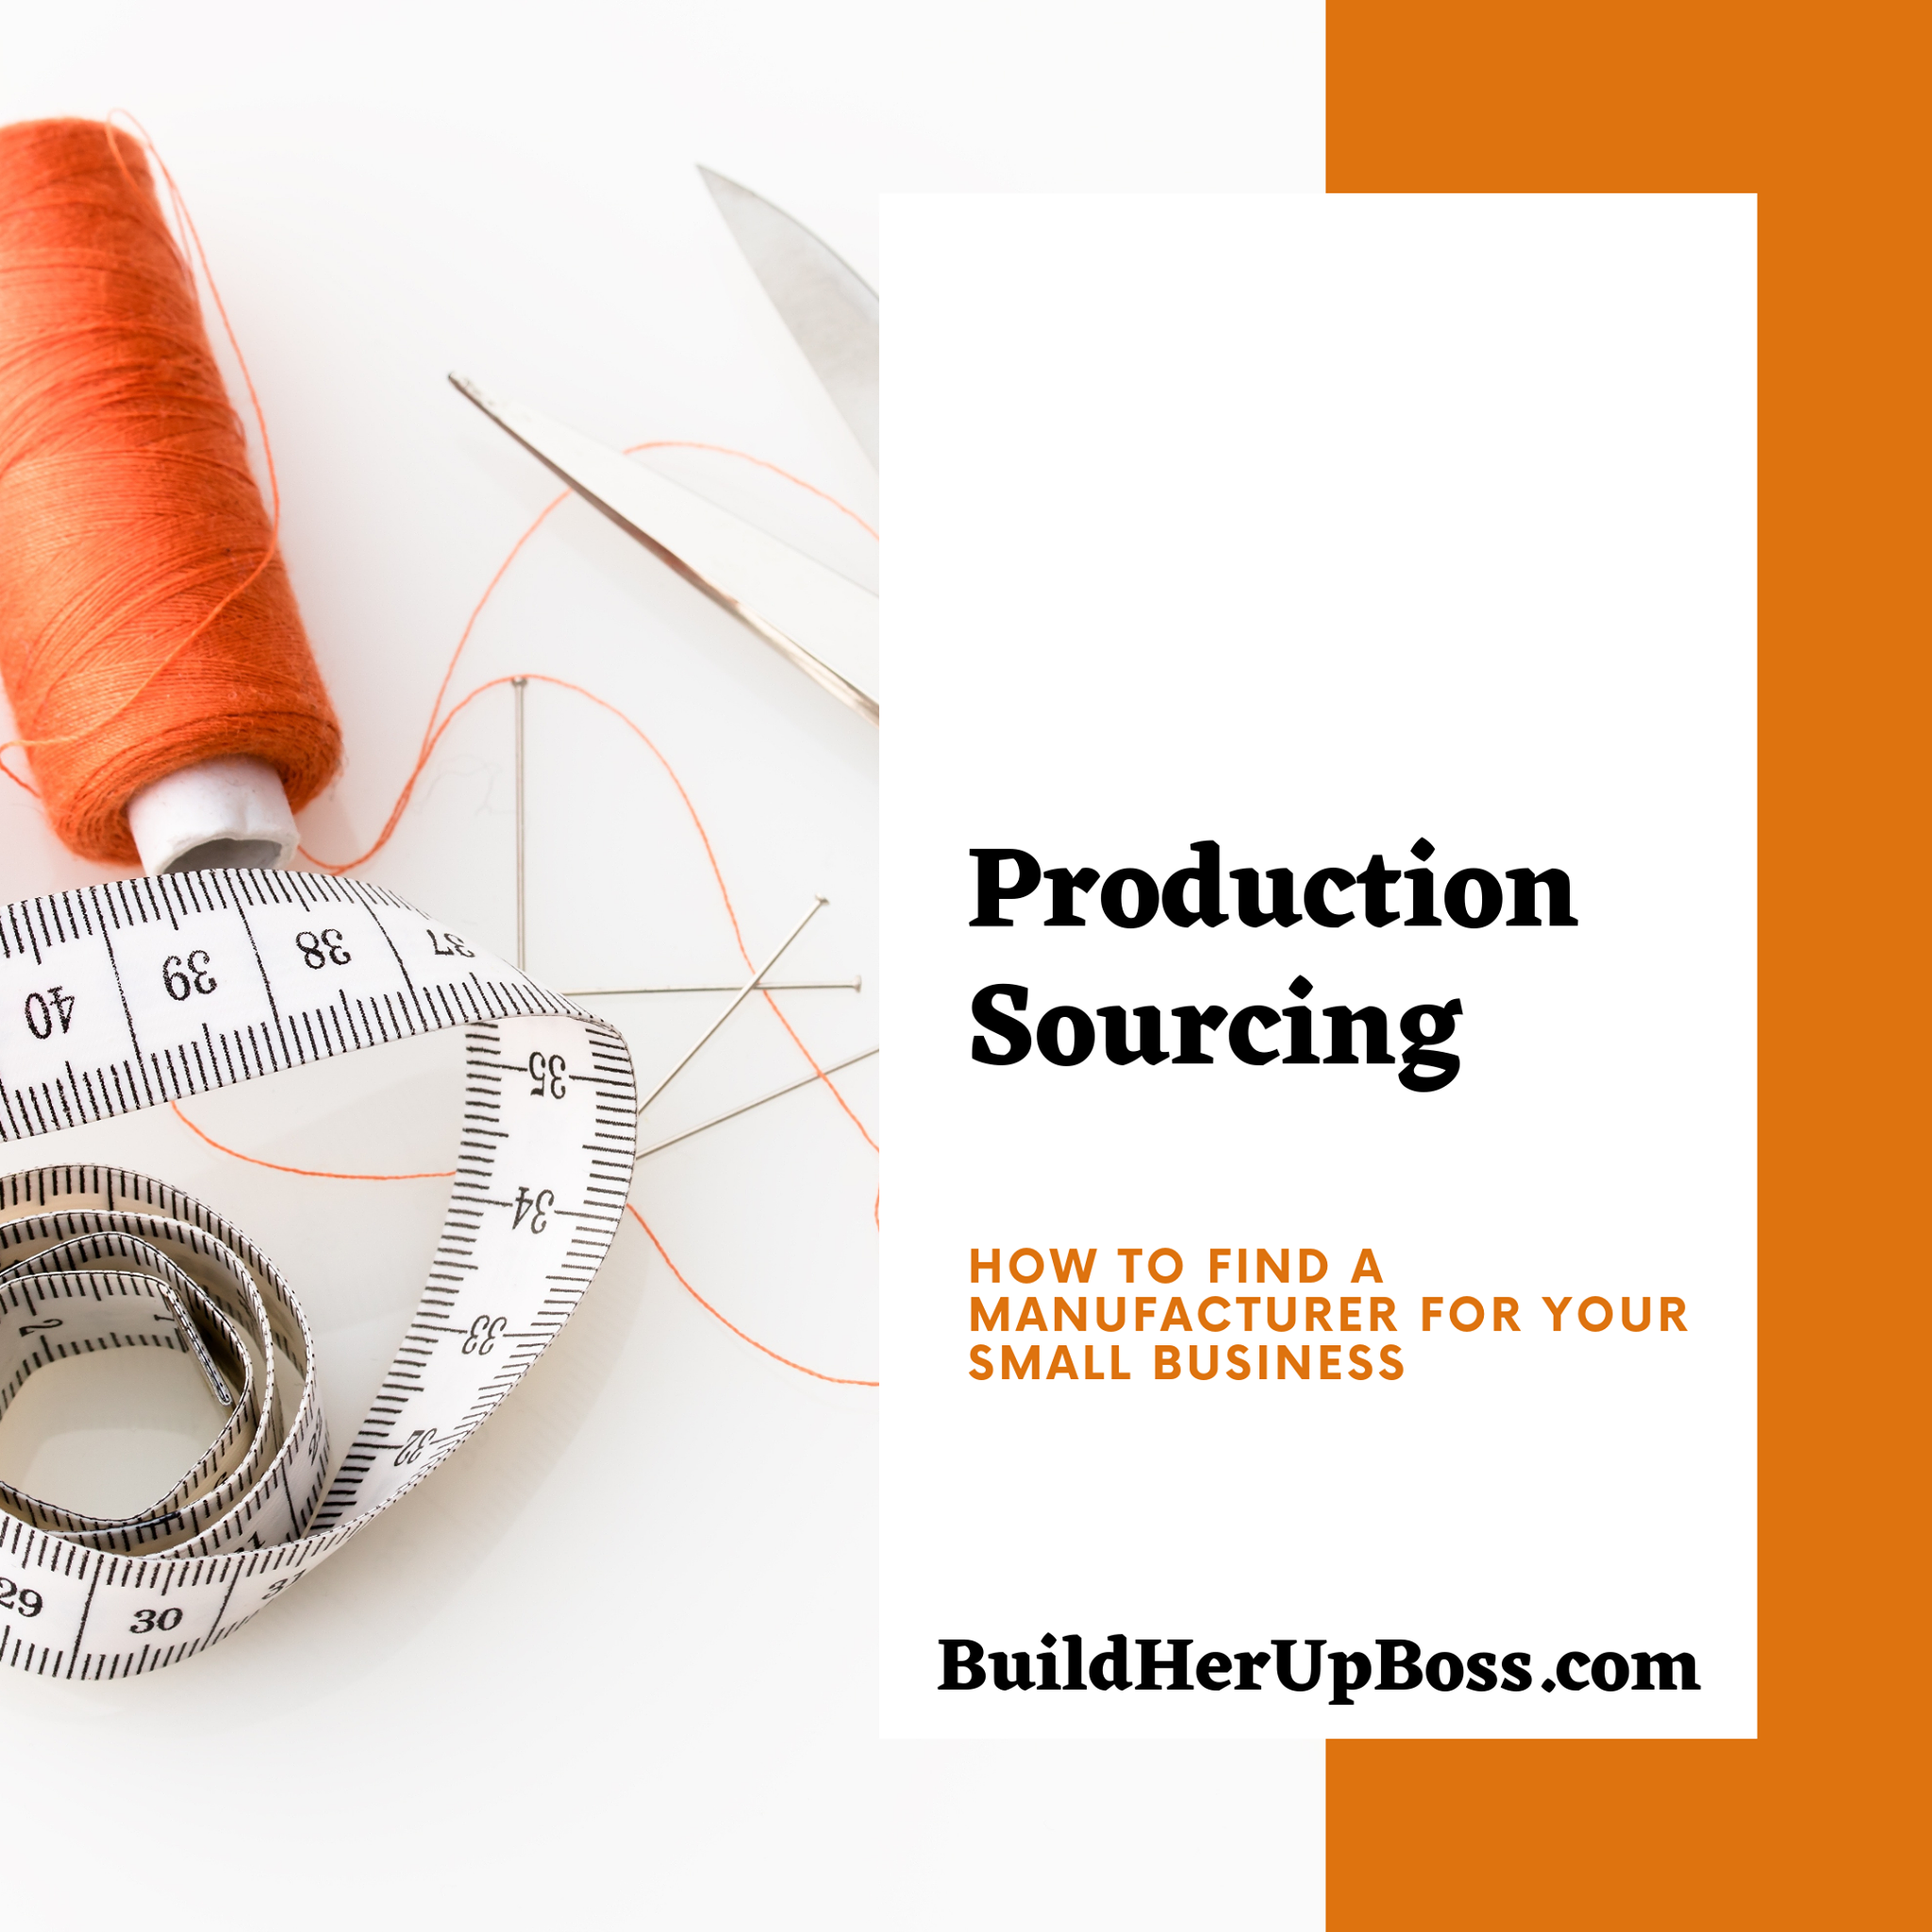 Production- Sourcing help for your handmade business